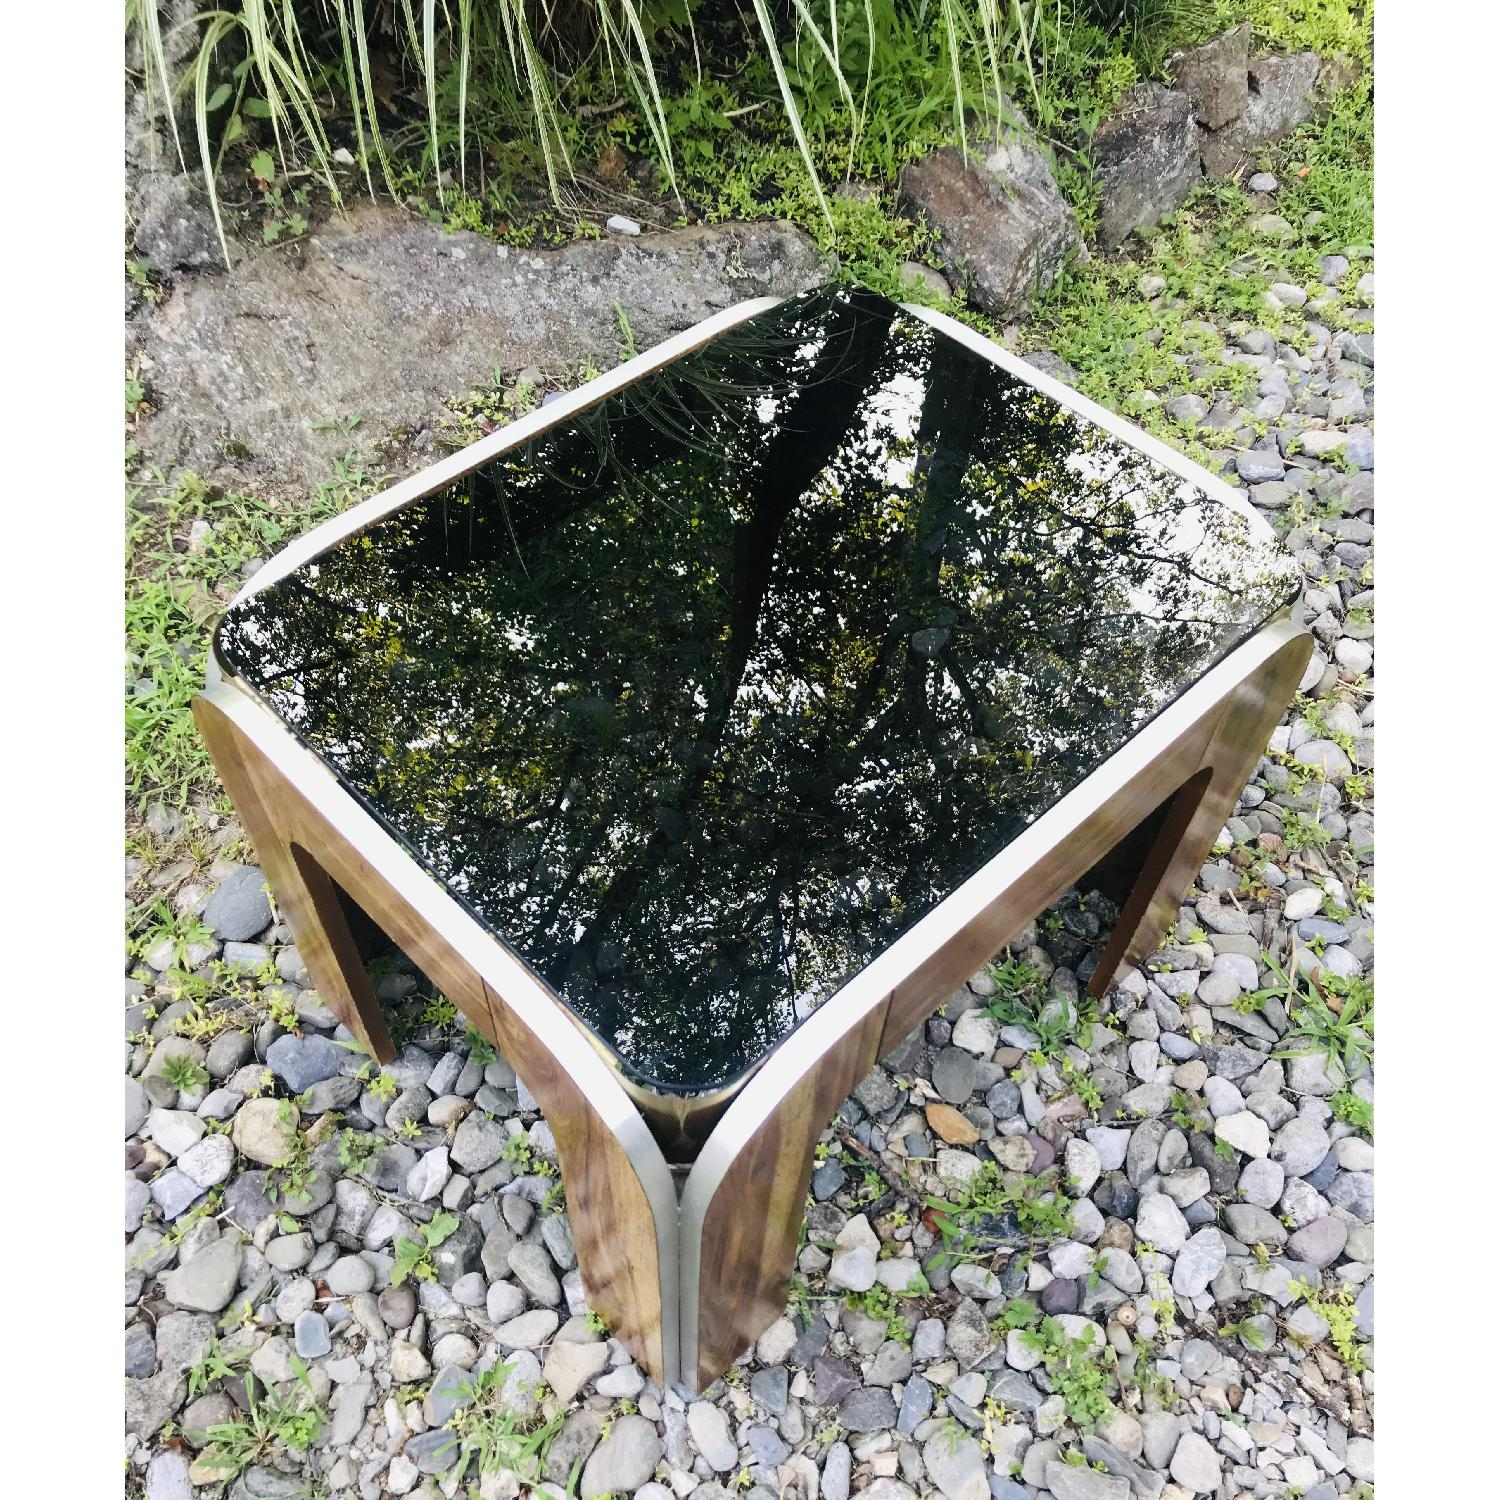 Vinitage Deco Style Coffee Table w/ Smoked Glass Top - image-3